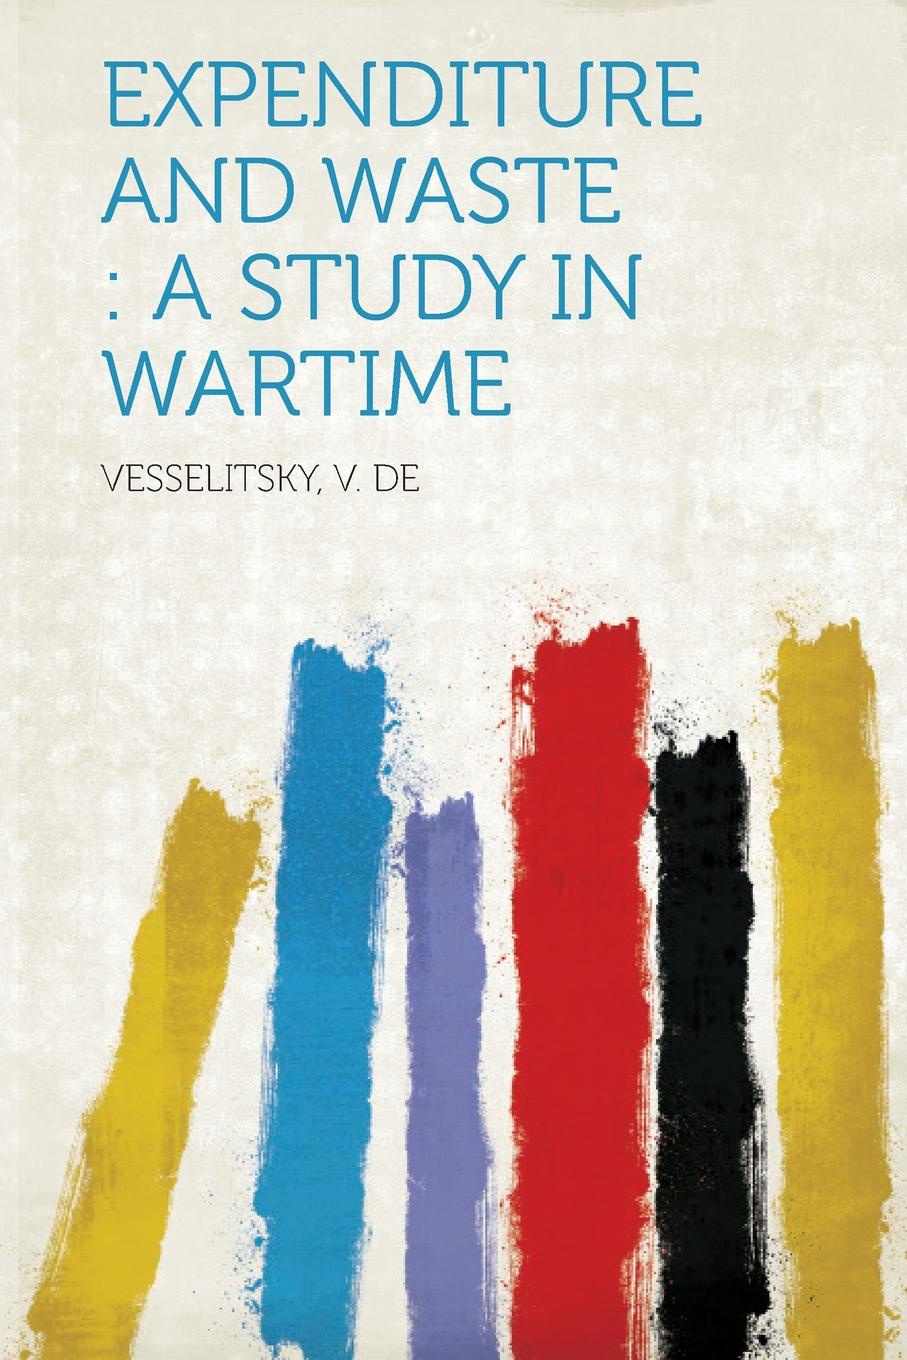 Vesselitsky V. De Expenditure and Waste. A Study in Wartime